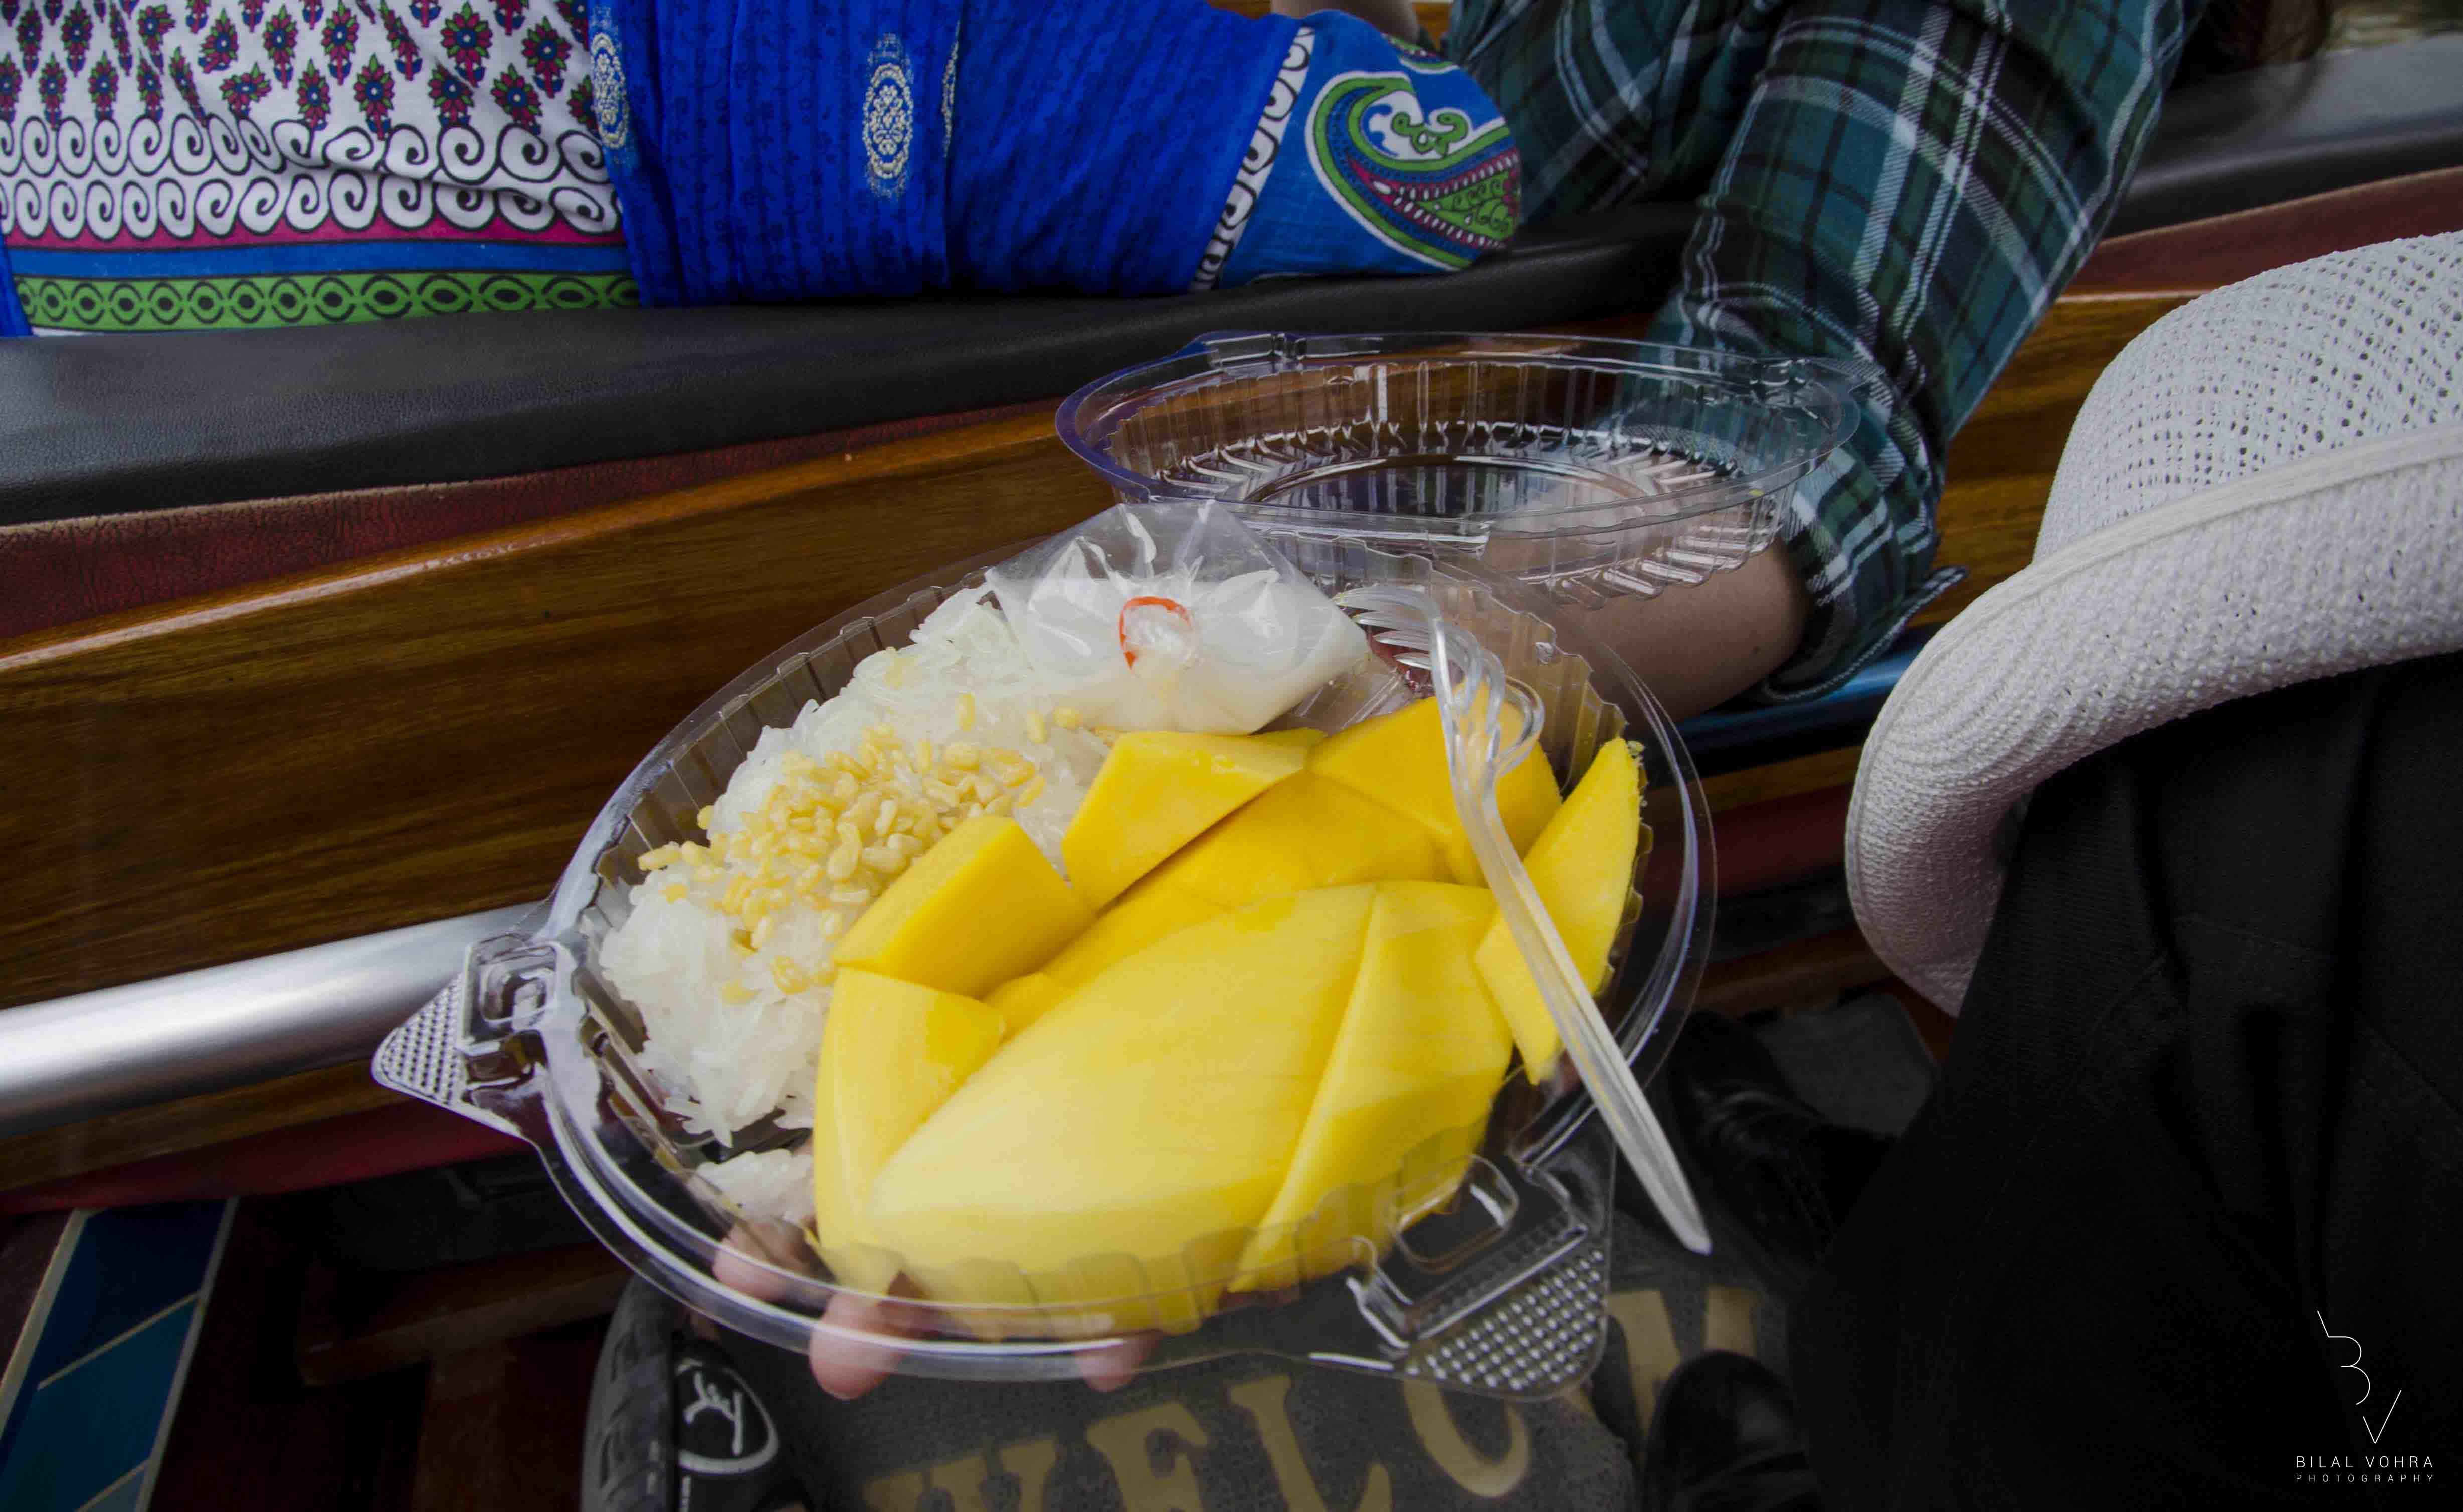 Mango & Sticky Rice being sold in floating market